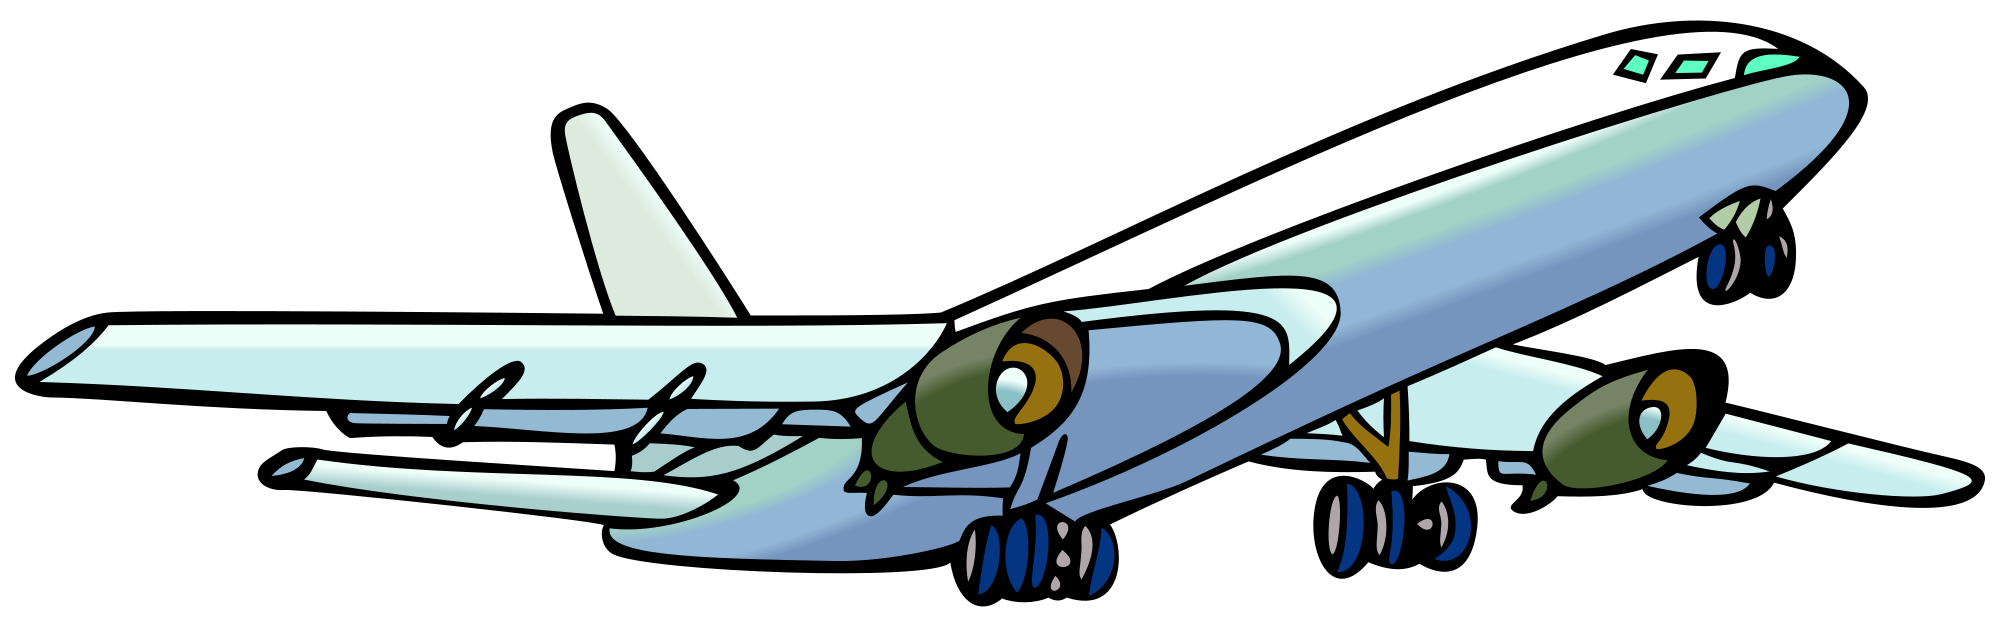 File airplane svg wikimedia. Commons clipart picture royalty free library